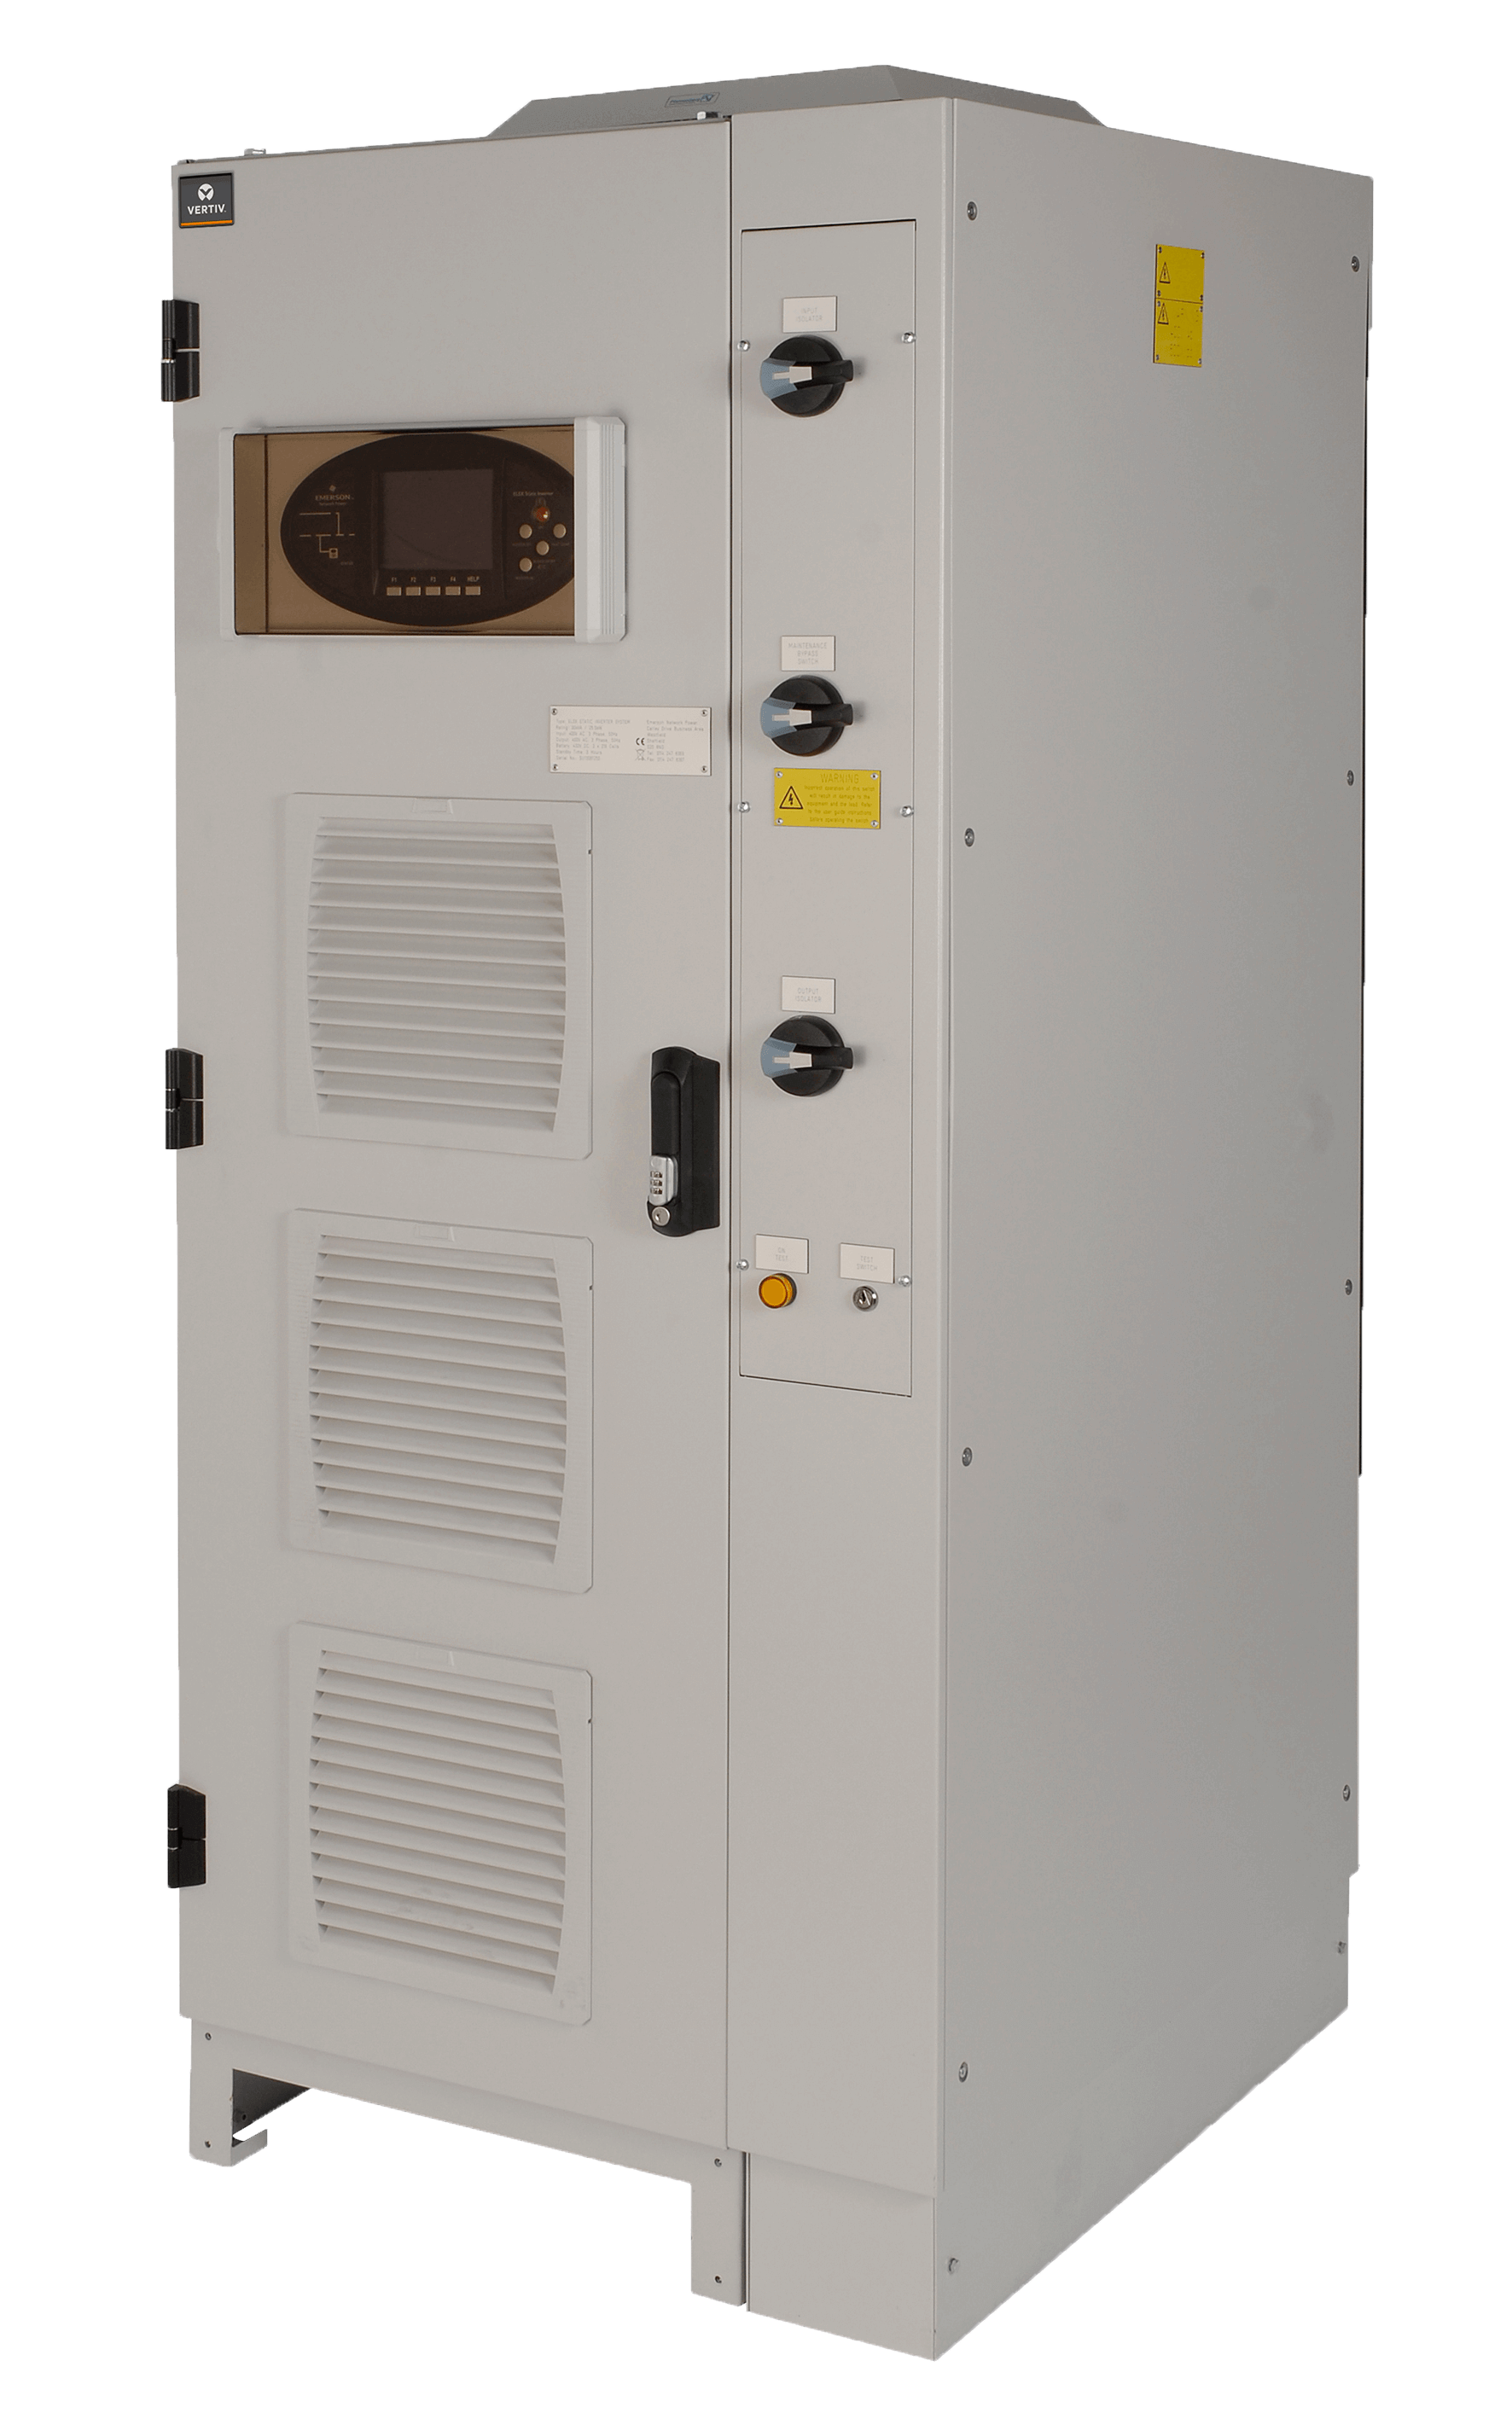 Elsx Modular Static 3 Phase Inverter Unit Ups Pure Sine Wave Schematic Diagram Datasheet Circuit Rating 10 Kva 125 For 1hour Or Hour Standby Hot Swappable Design Active No Break Mode This Product Is Fully Compliant With Bs En